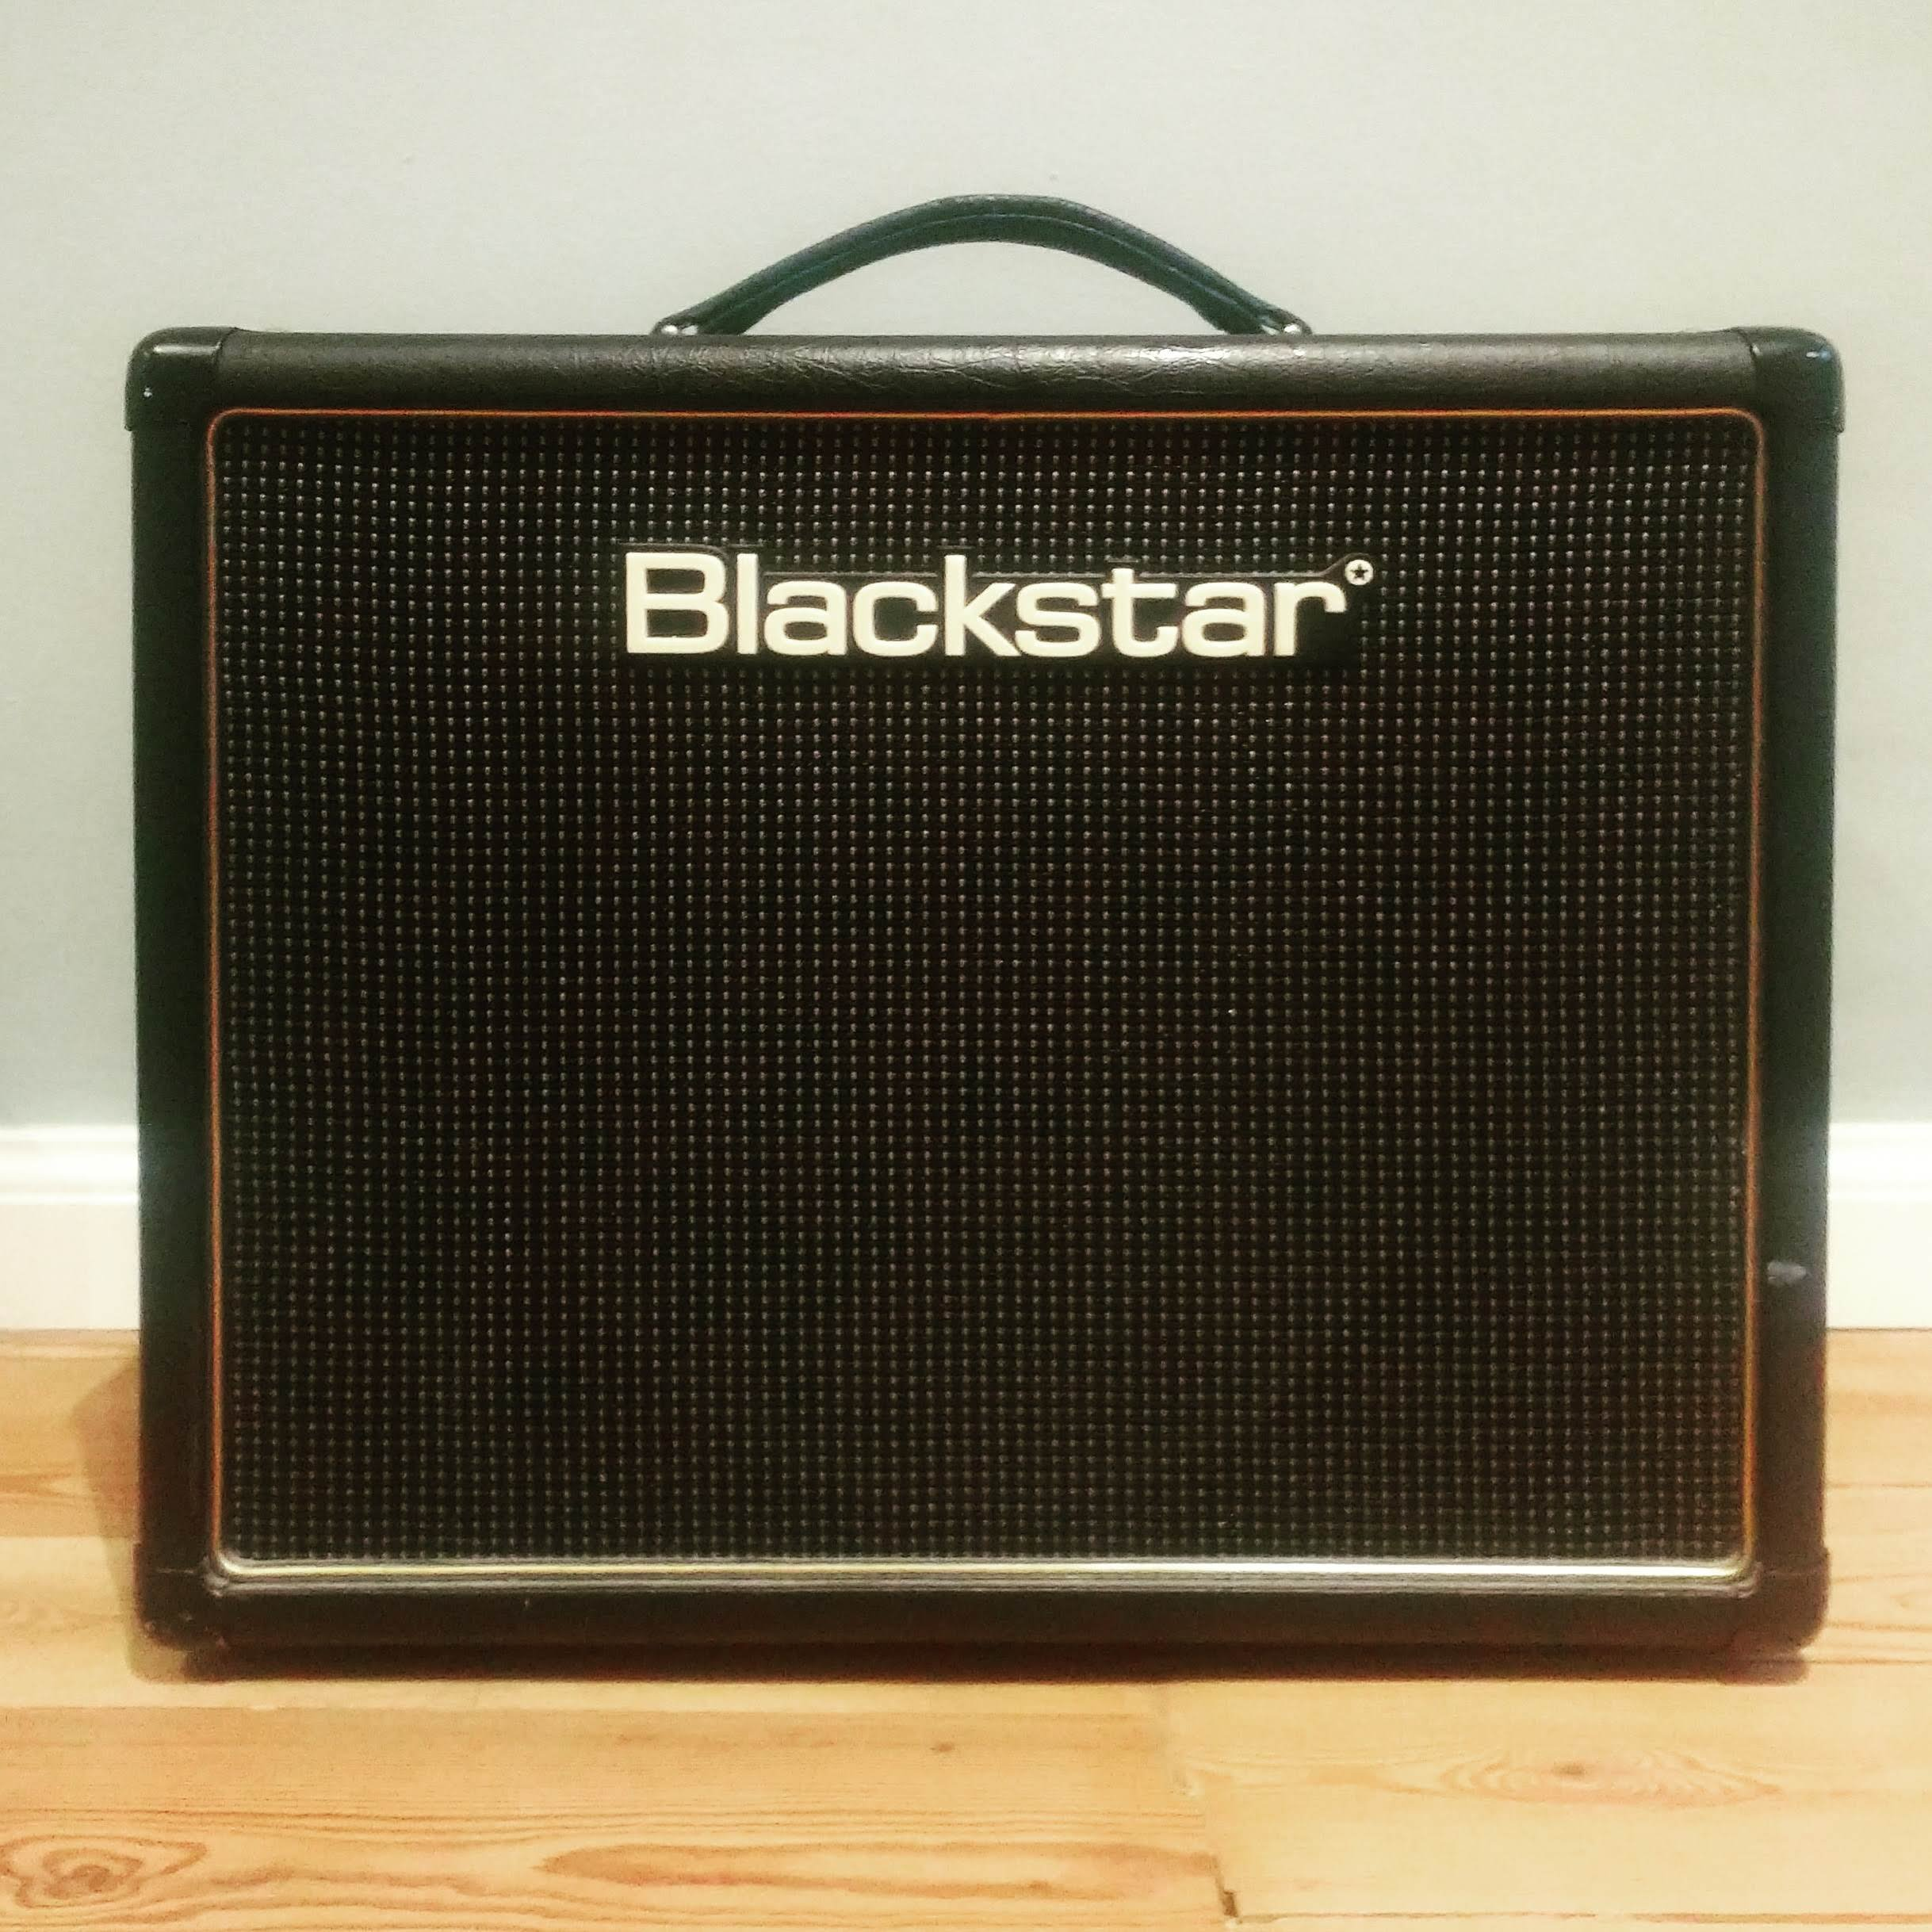 Blackstar HT5 effectsloop repair